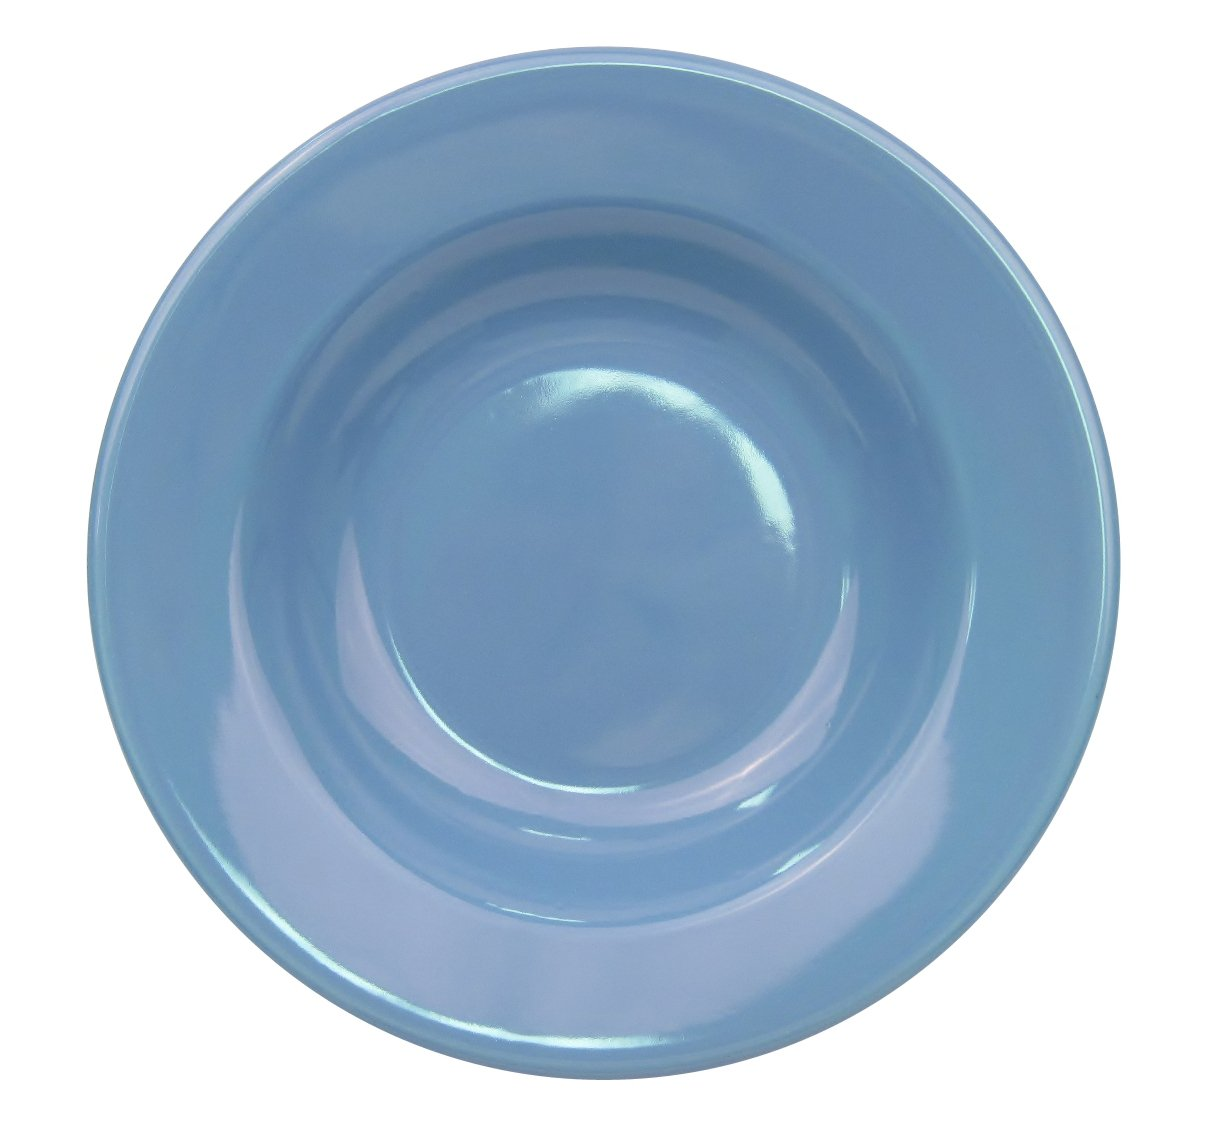 CAC China LV-3-LB 8-3/4-Inch Las Vegas Rolled Edge Stoneware Rimmed Soup Plate, 12-Ounce, Light Blue, Box of 24